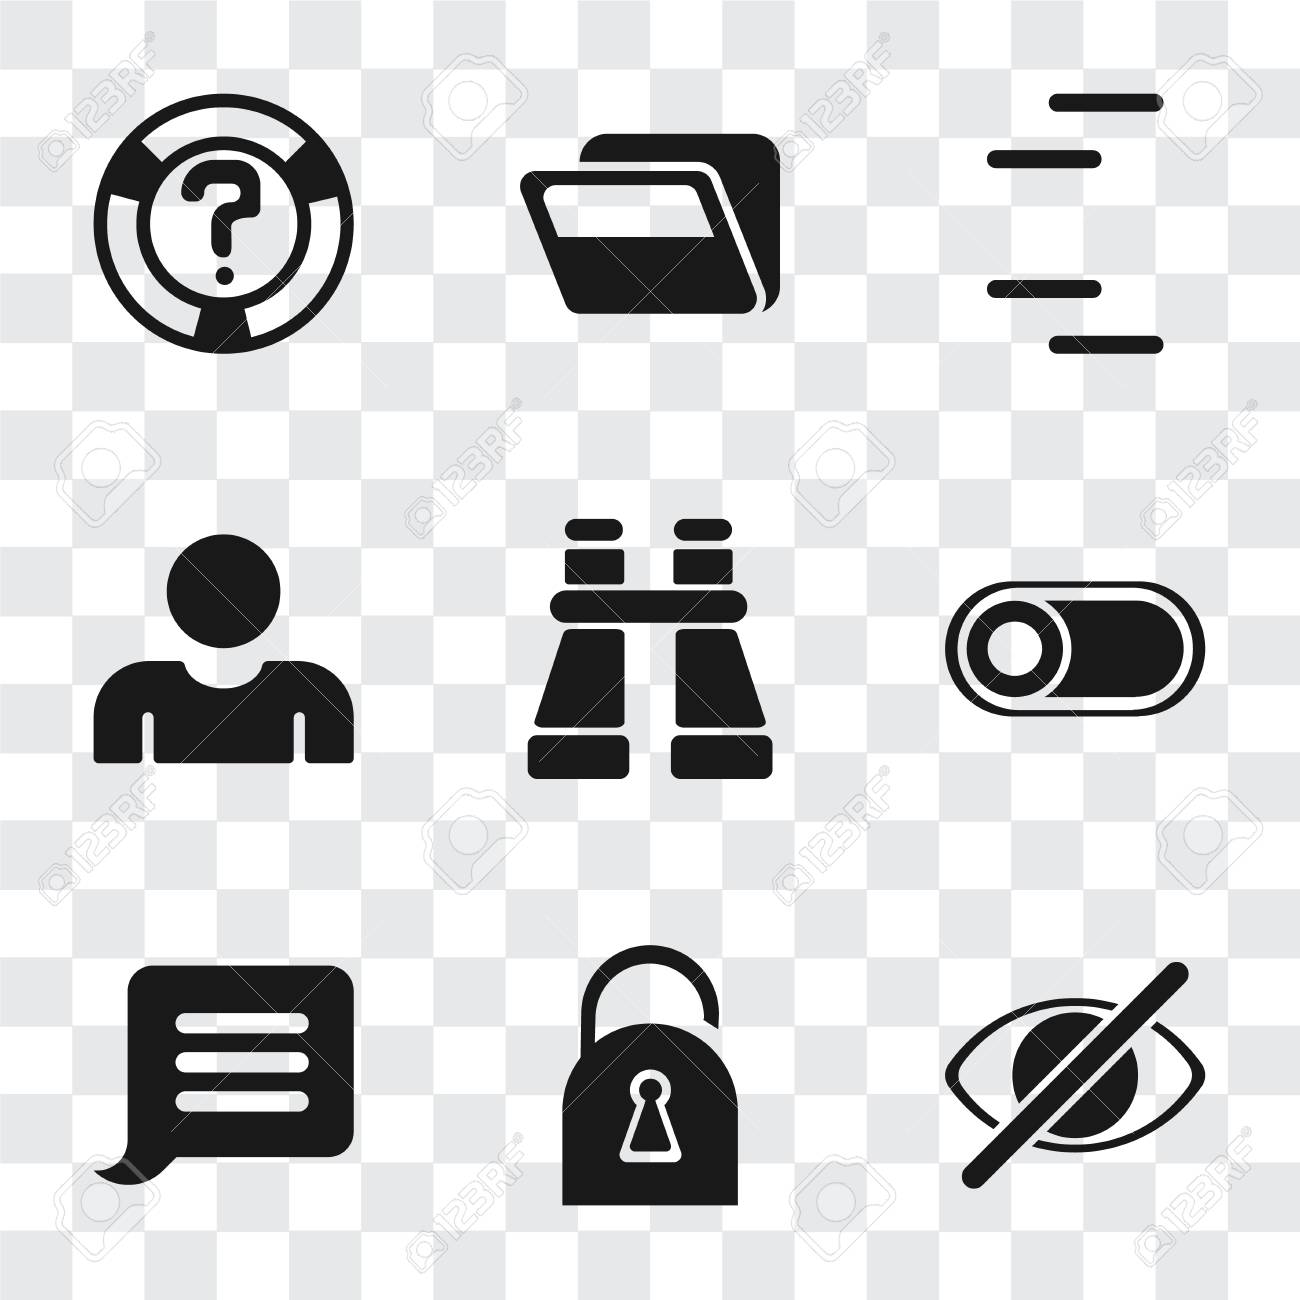 Set Of 9 Simple Transparency Icons Such As Hide Locked Notification Royalty Free Cliparts Vectors And Stock Illustration Image 111924363 İngilizce türkçe online sözlük tureng. 123rf com